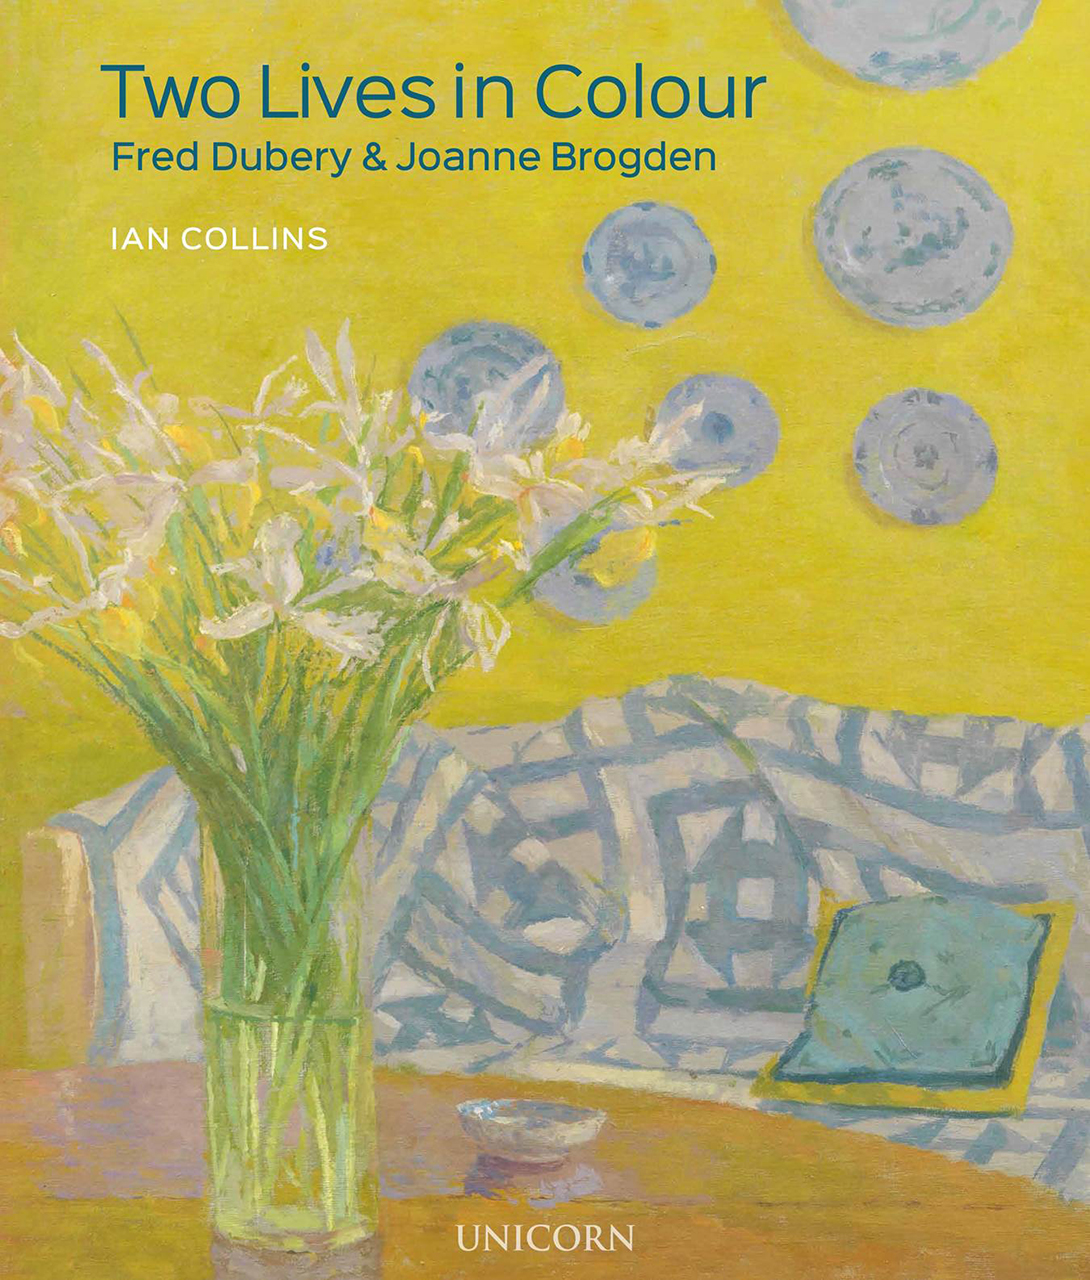 Two Lives in Colour: Fred Dubery and Joanne Brogden